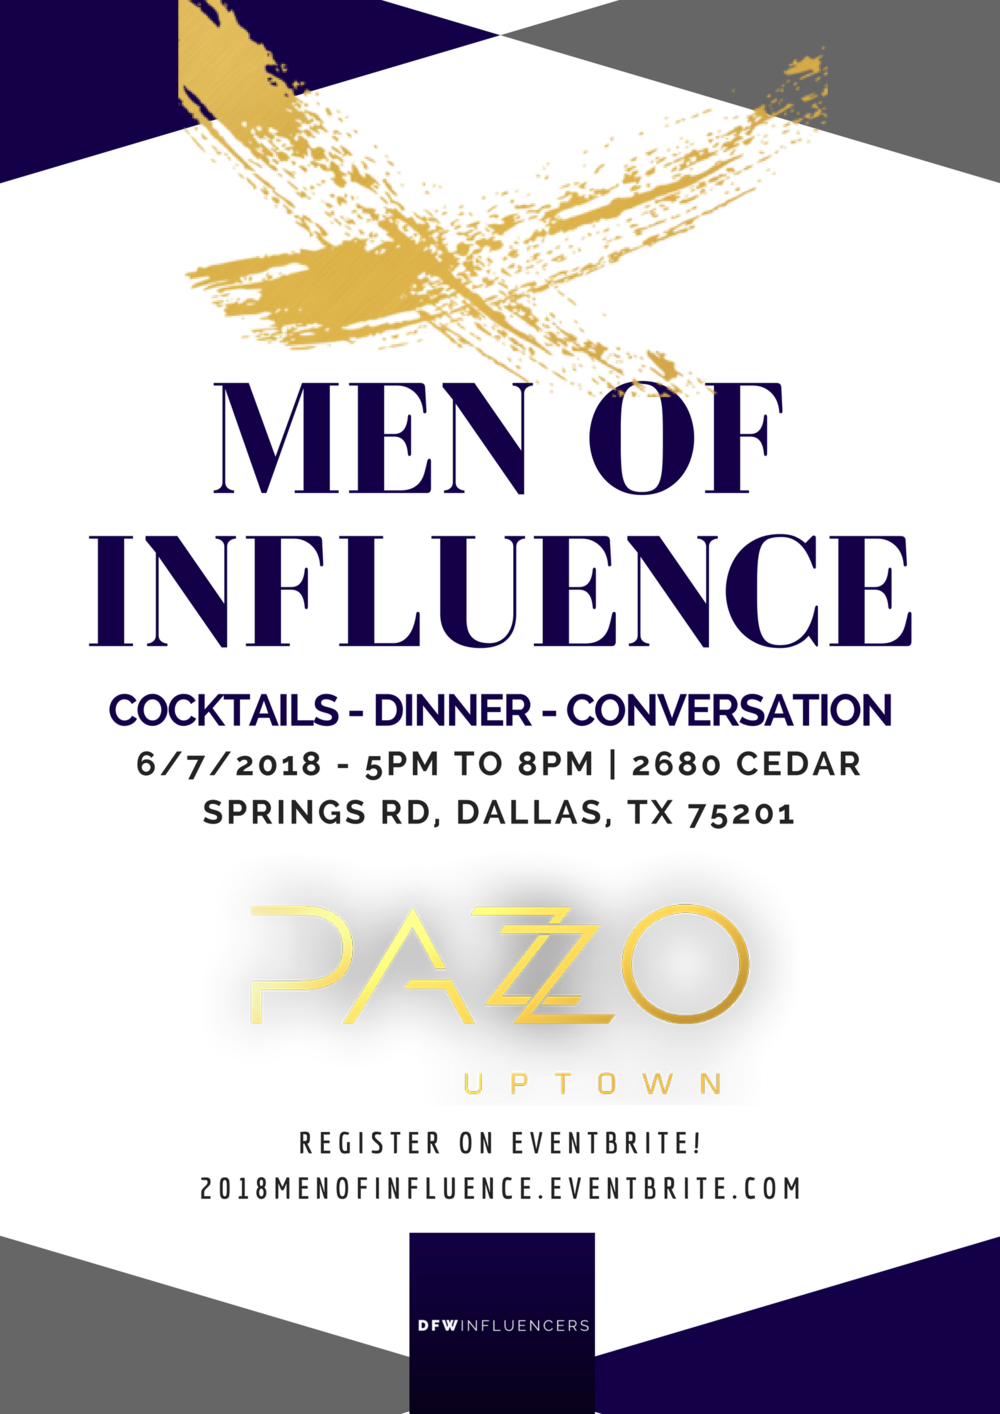 2018 Men of Influence Dinner - Amin and Company